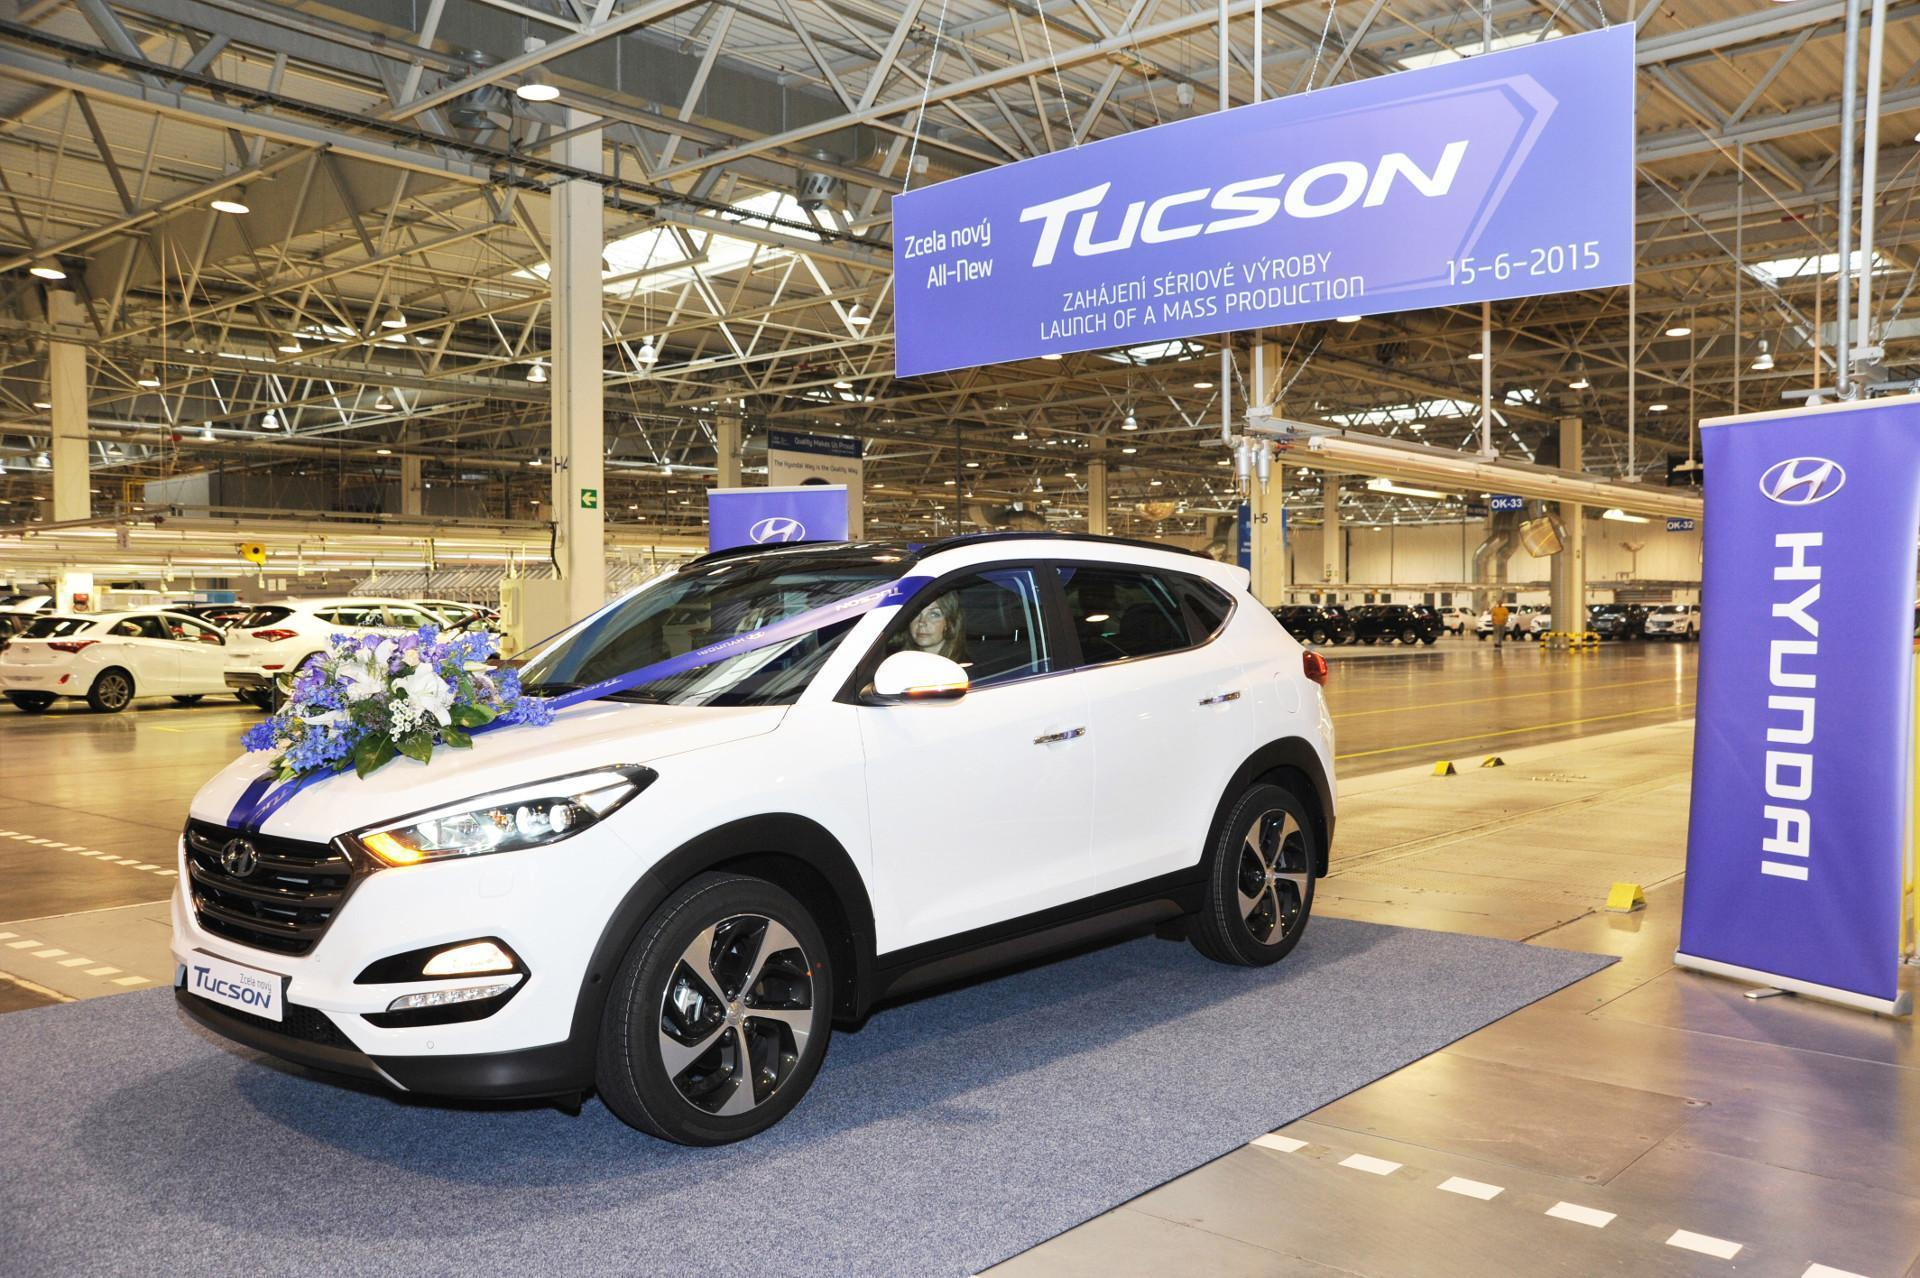 Hyundai Tucson Production